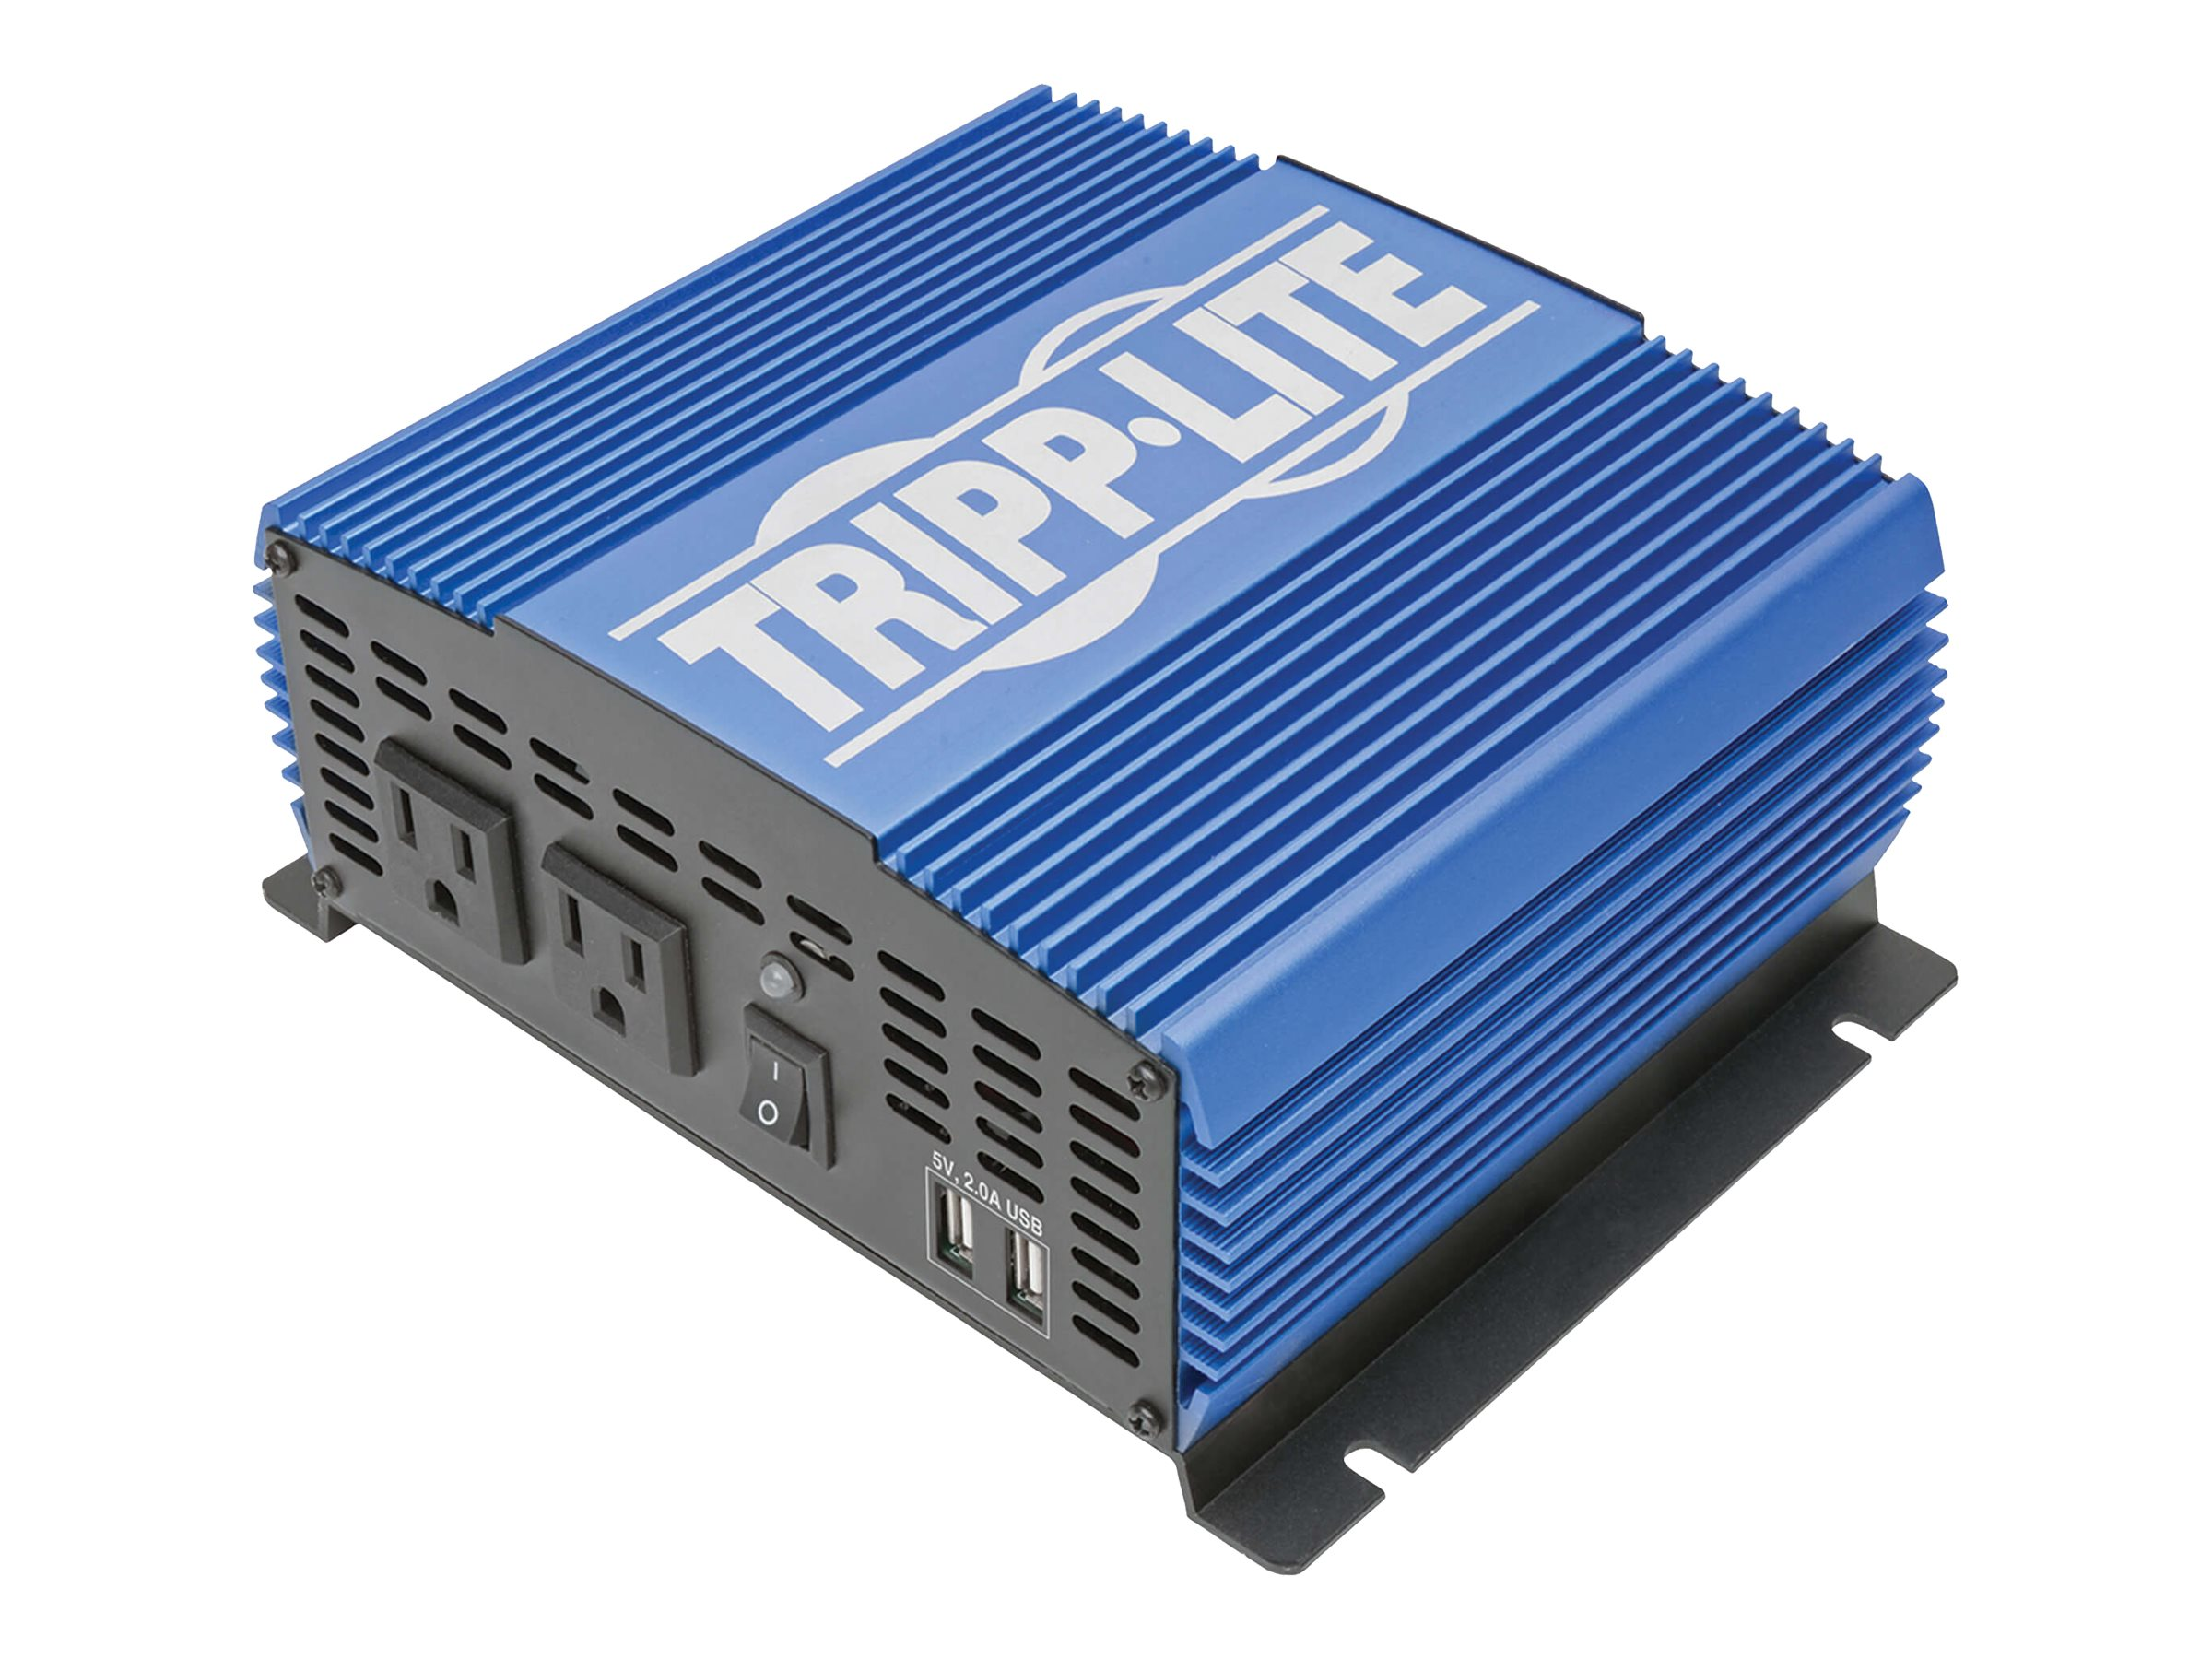 Tripp Lite 1500W Compact Power Inverter Mobile Portable w/ 2 Outlets & 2 USB Charging Ports - DC to AC power inverter -…